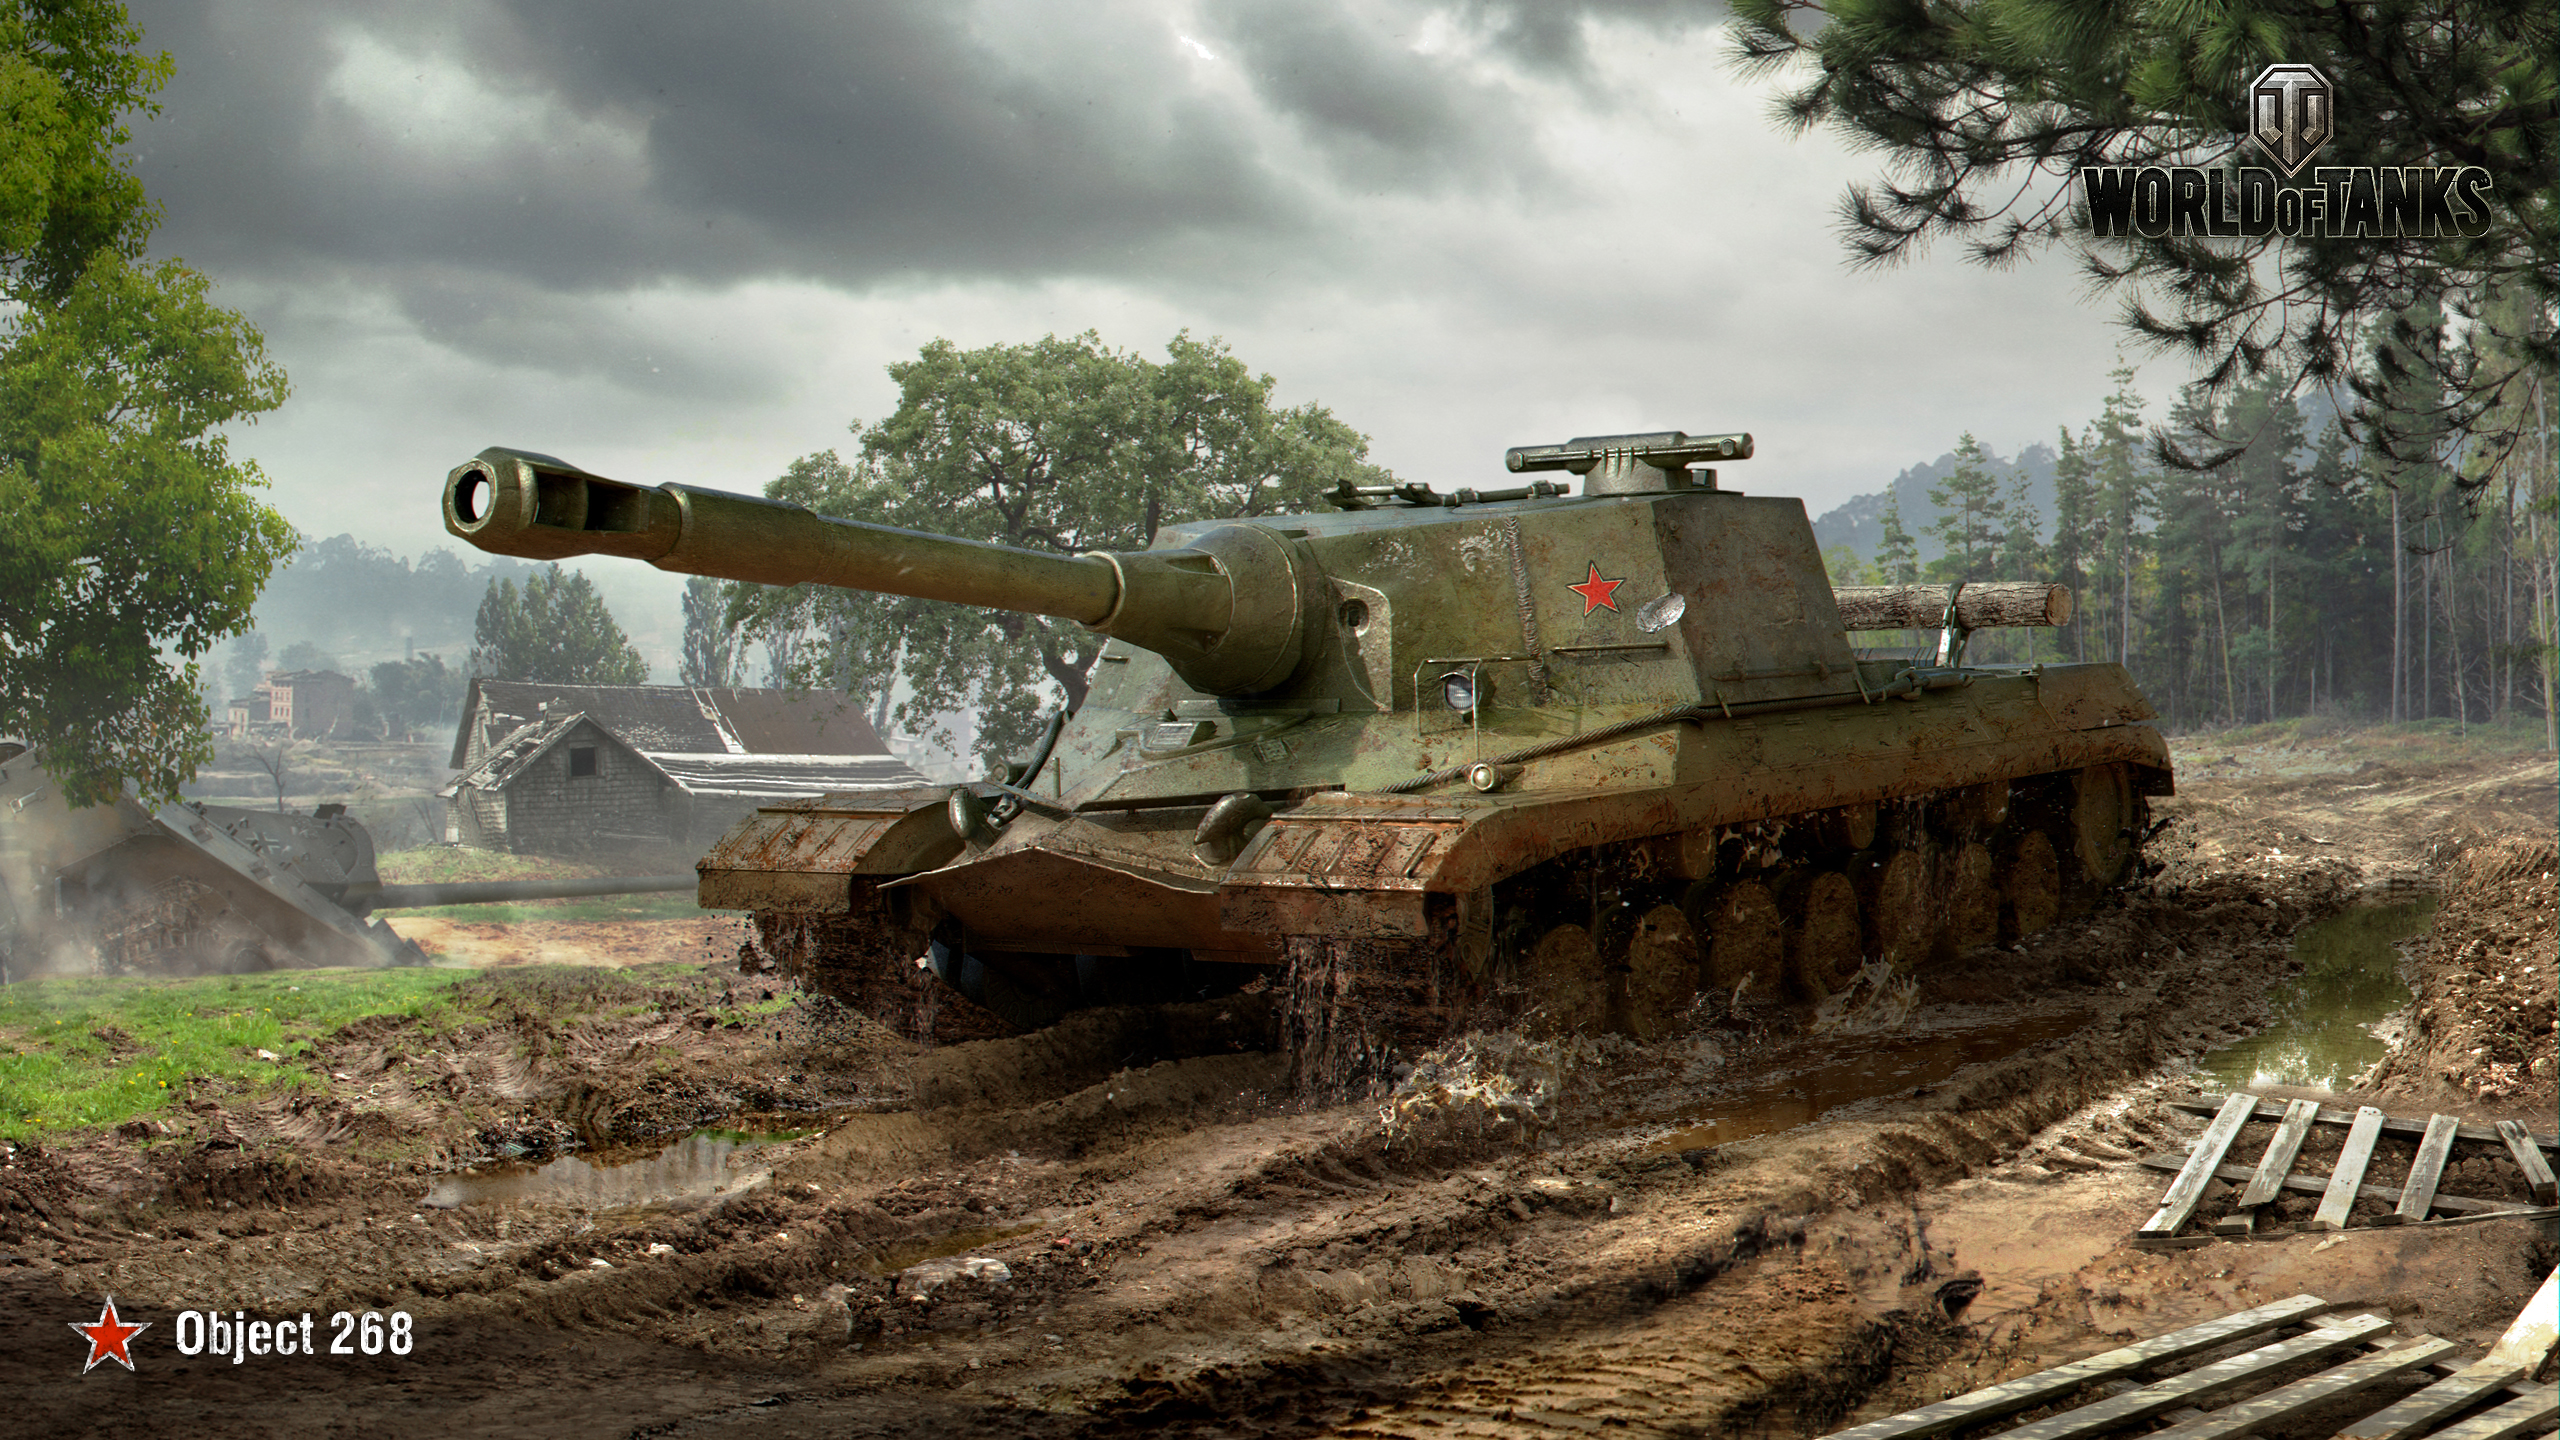 Wallpaper For July 2015 General News World Of Tanks